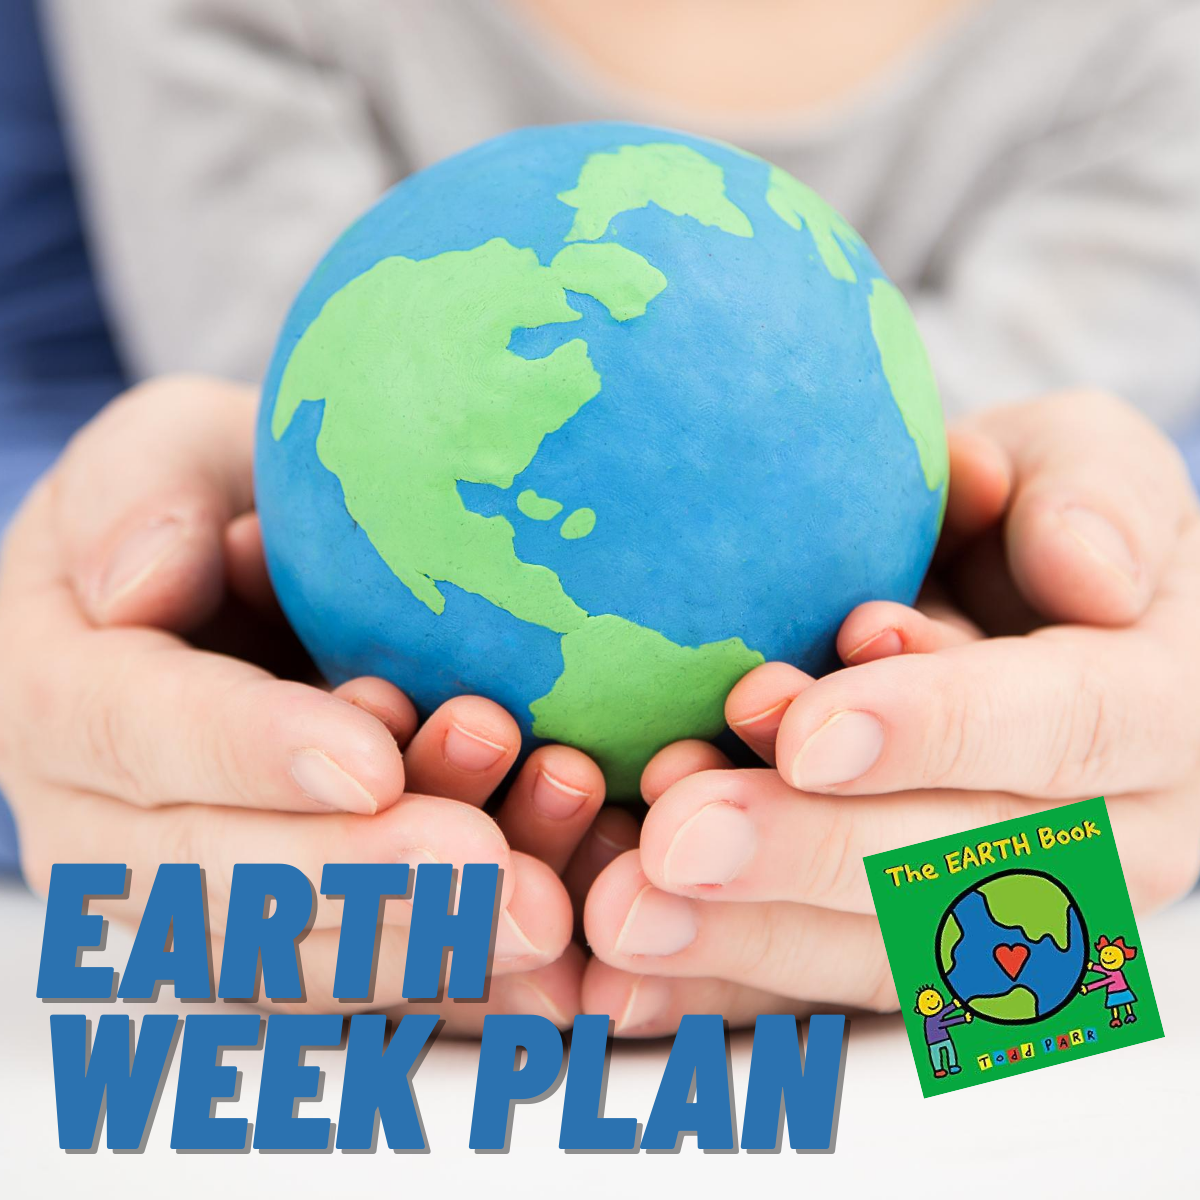 Earth Week for Preschoolers Featuring The Earth Book